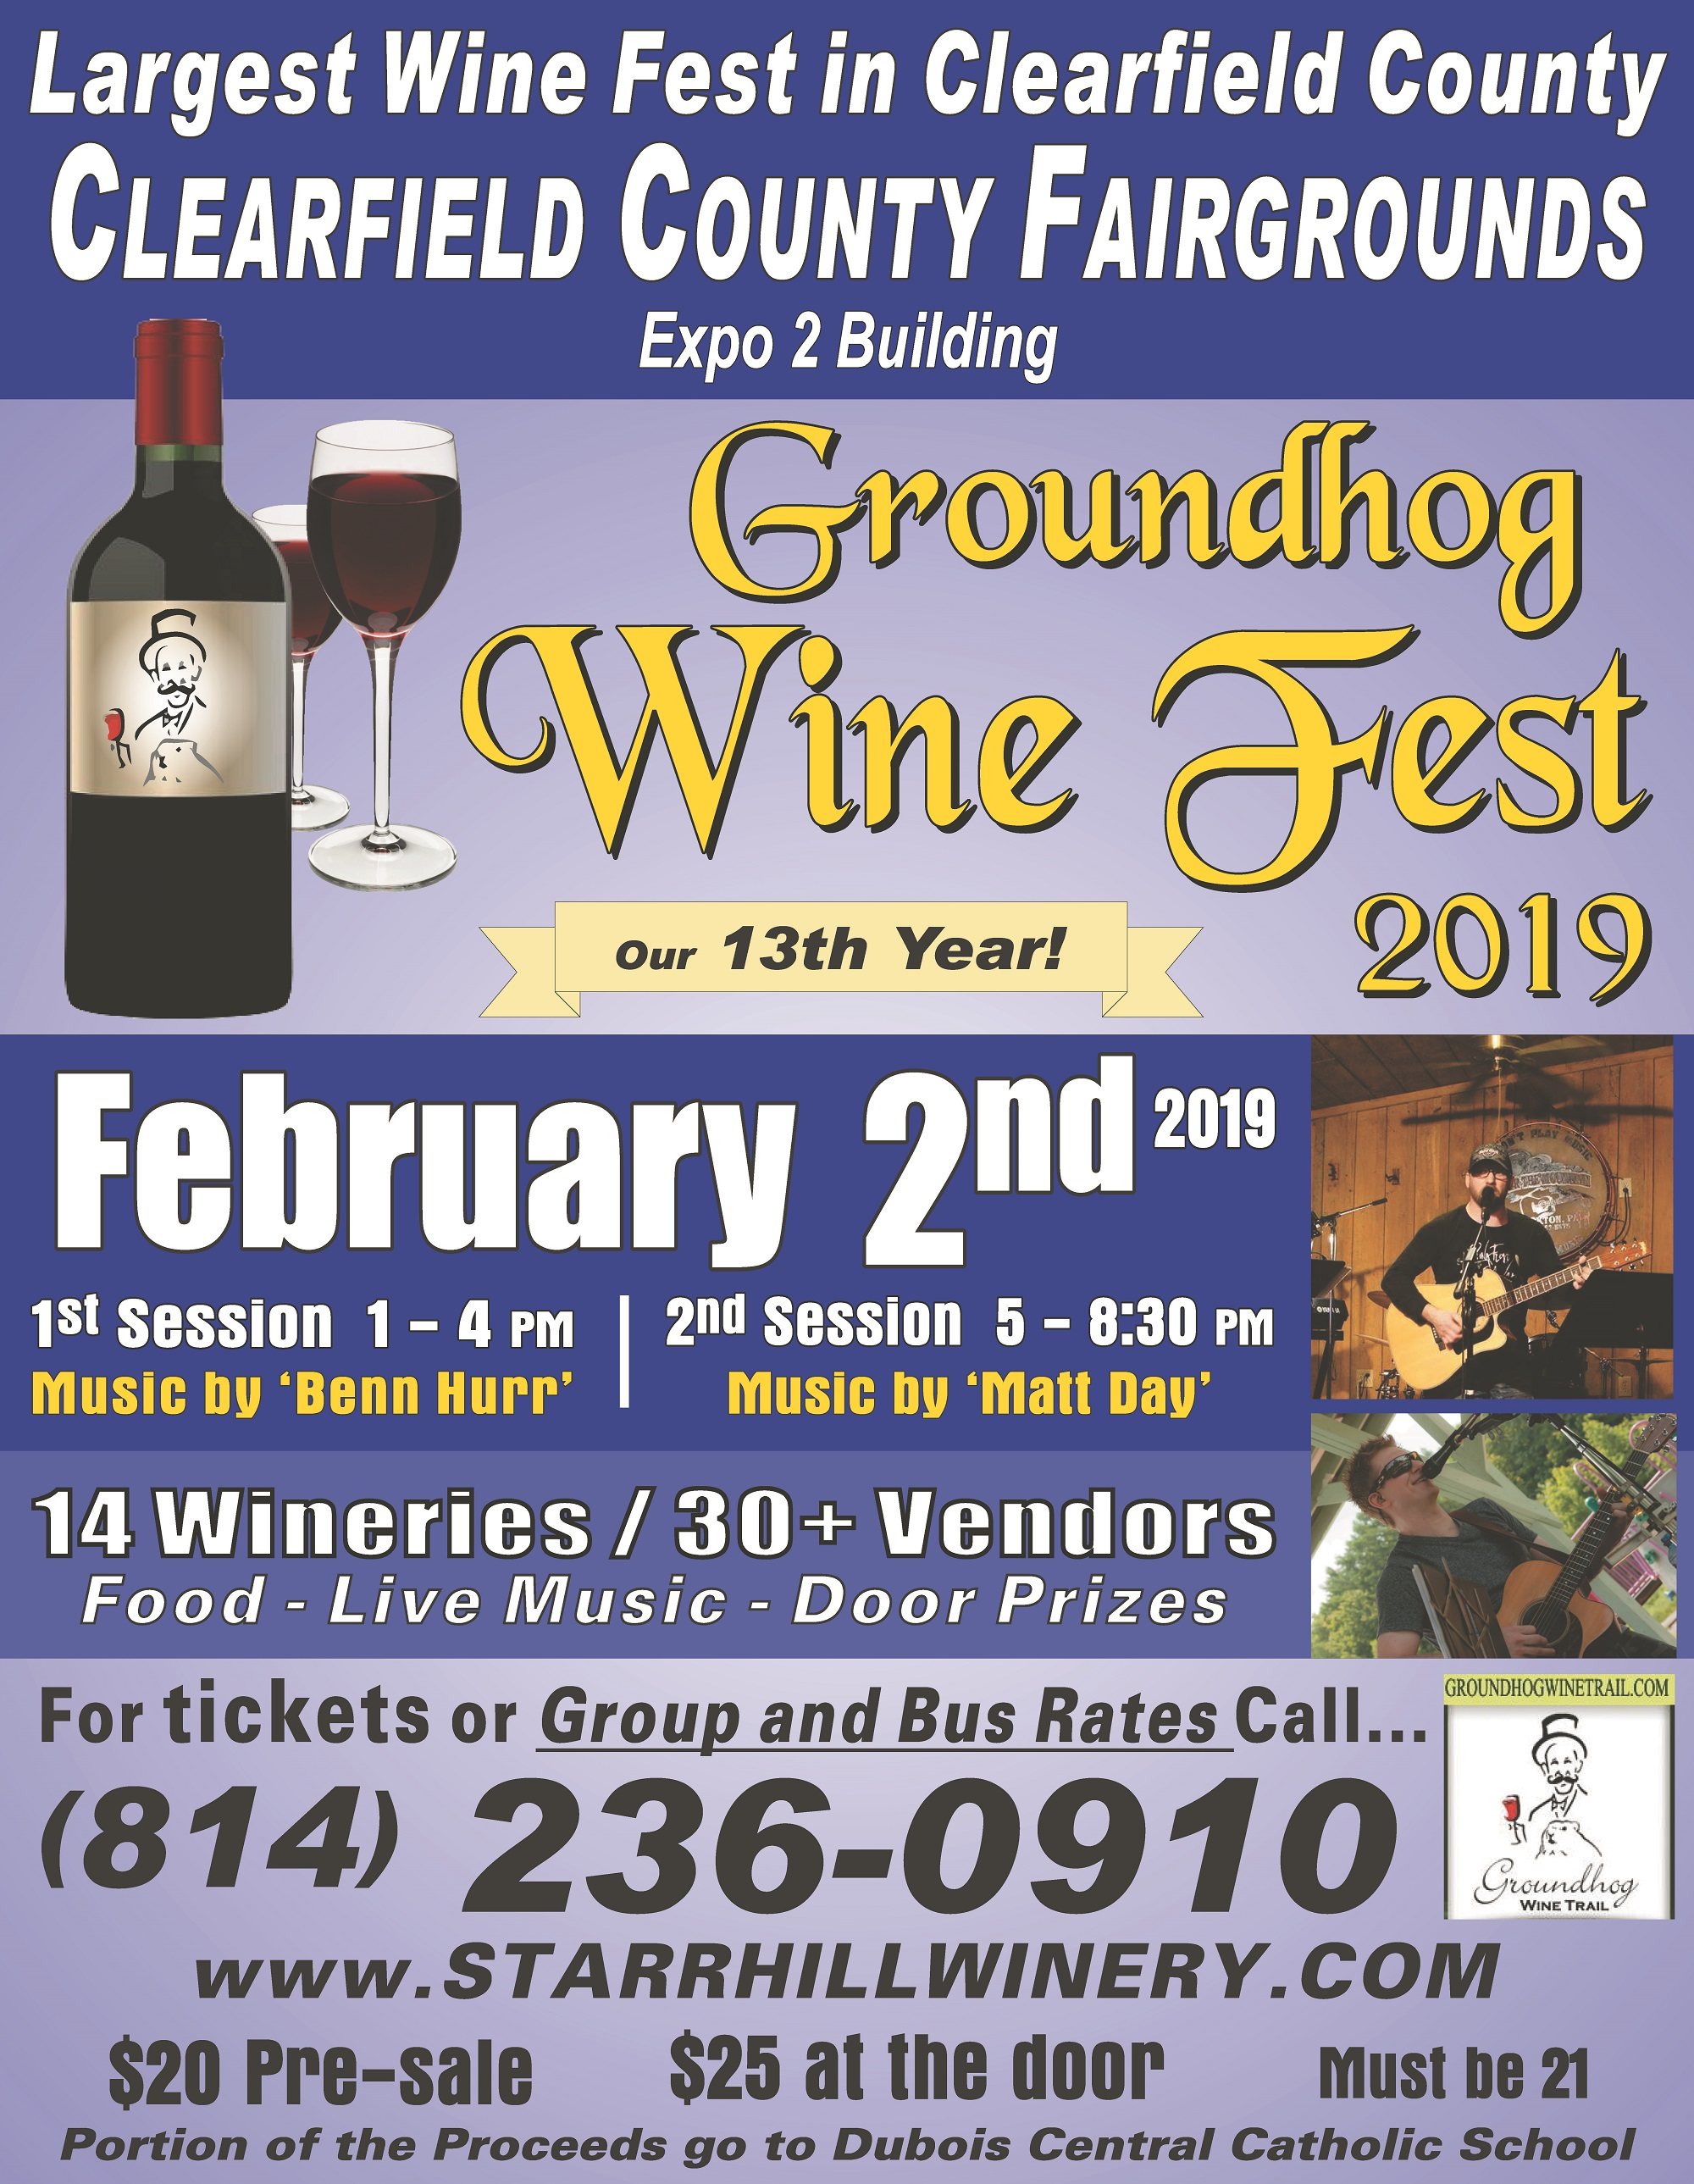 Win Tickets to the Grounghog Wine Festvial Courtesy of Starr Hill Winery, GANT News and Novey Recycling